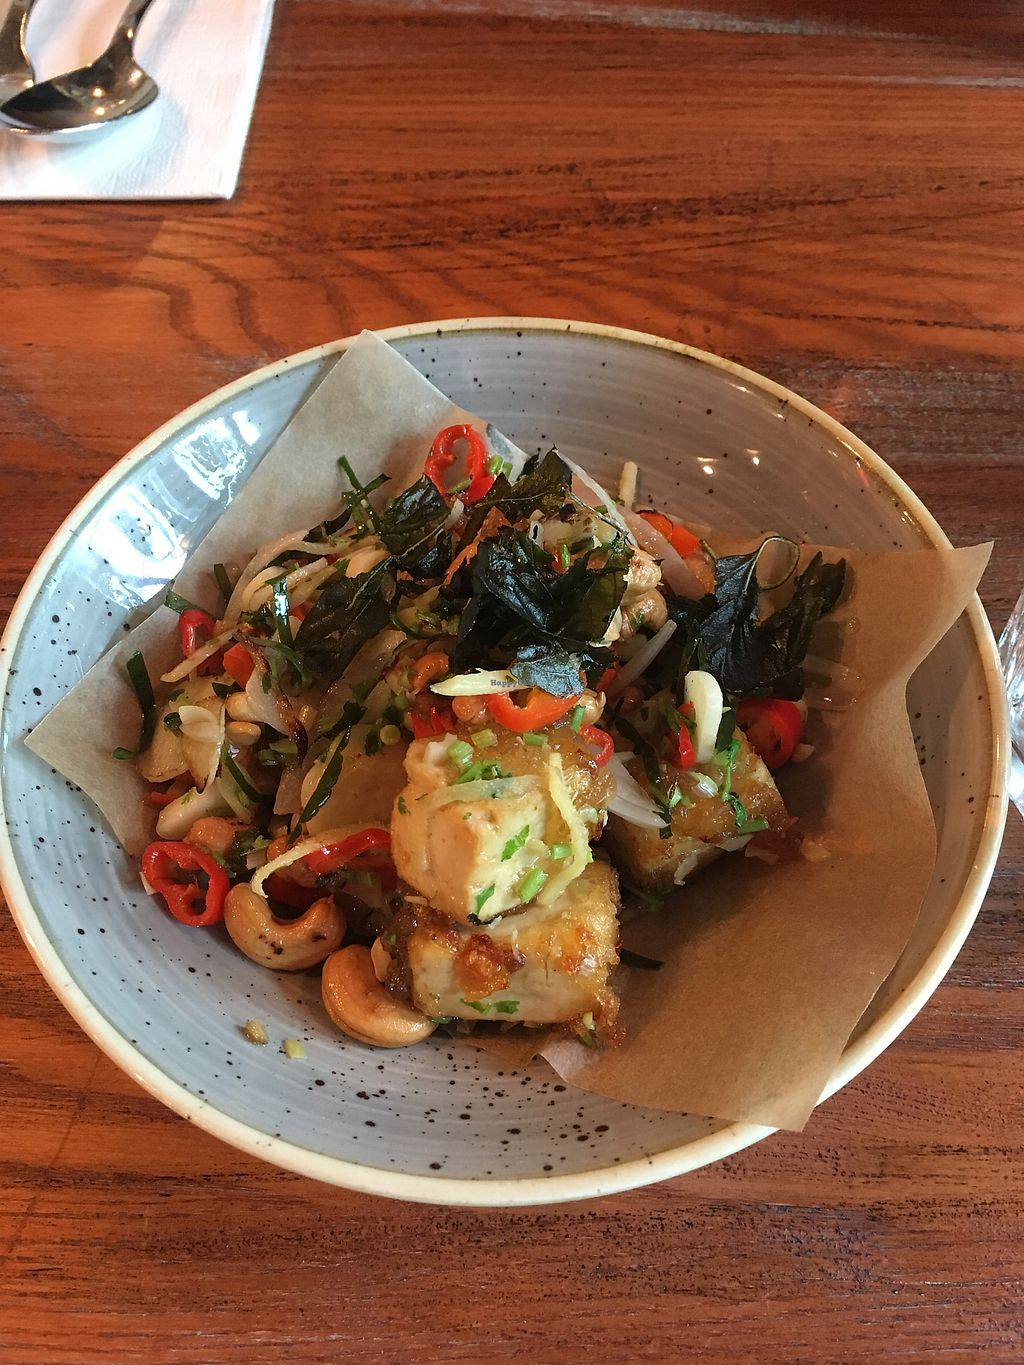 "Photo of Cha Cha  by <a href=""/members/profile/_zelisa"">_zelisa</a> <br/>Fried tofu with basil, cashews and spicy peppers <br/> March 3, 2018  - <a href='/contact/abuse/image/41726/366255'>Report</a>"